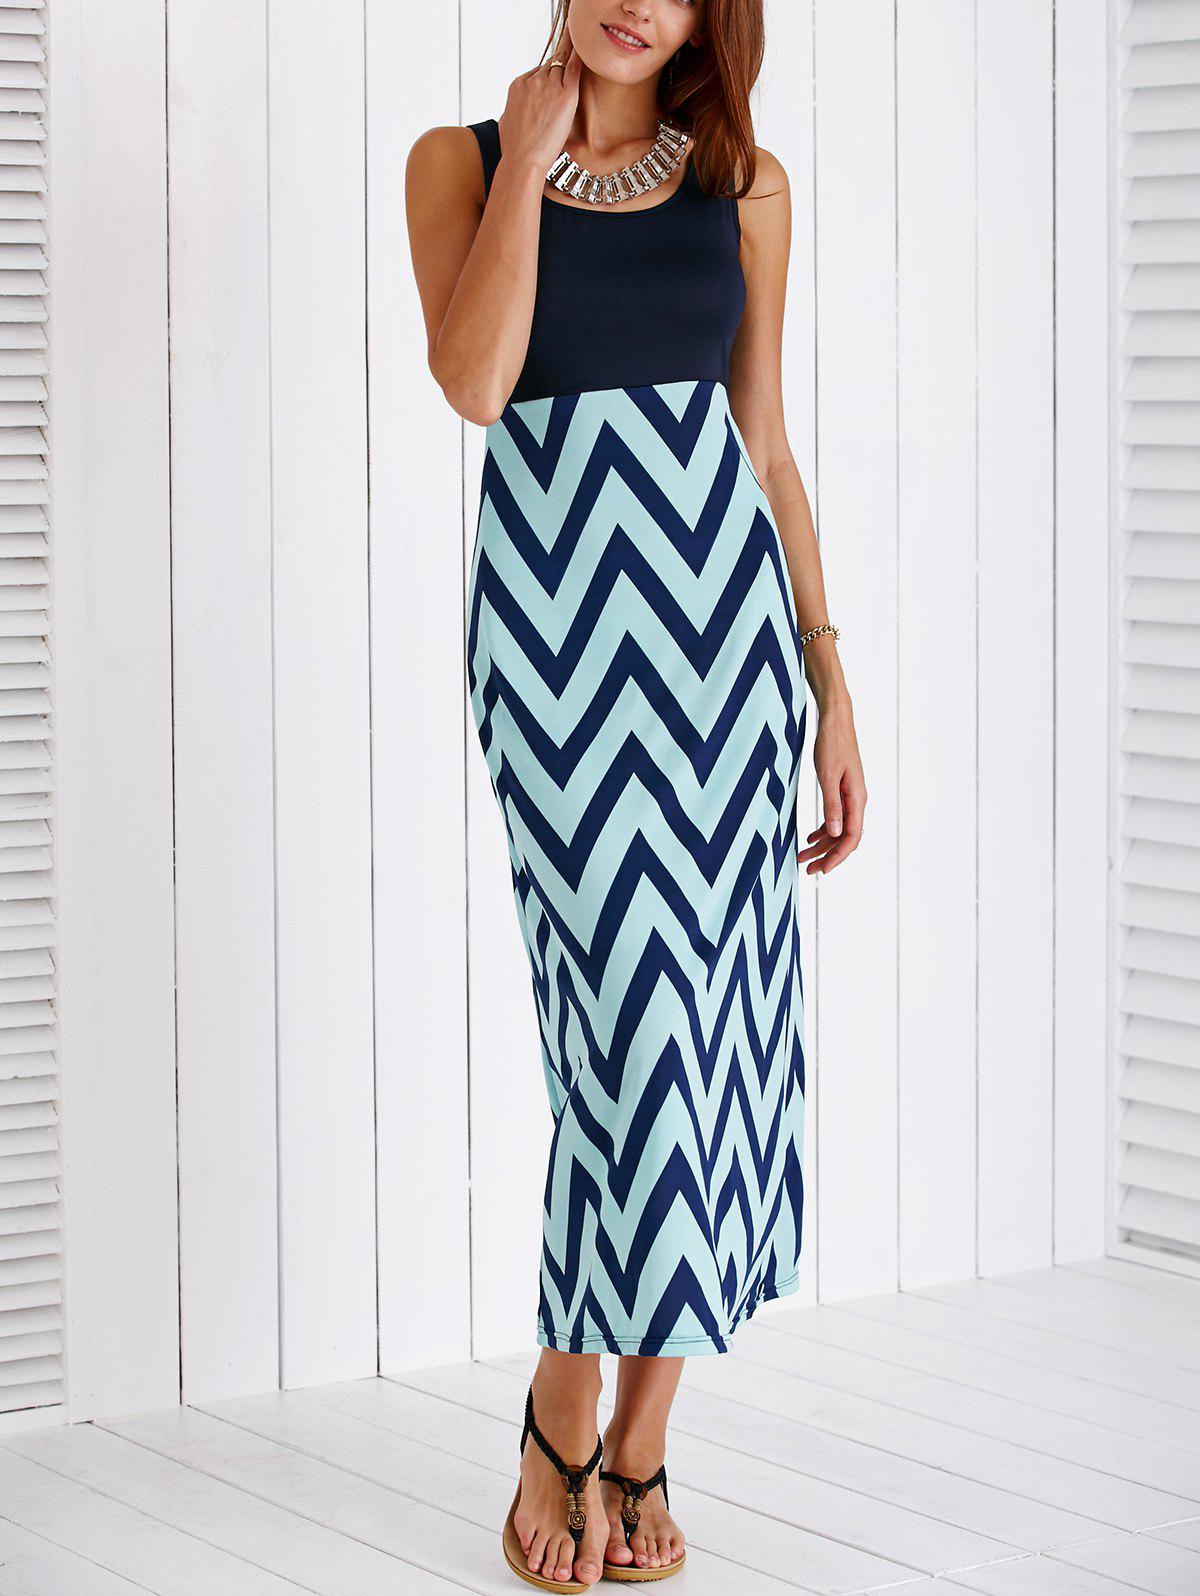 Stylish Women's Scoop Neck Zig Zag Maxi Dress - DEEP BLUE S